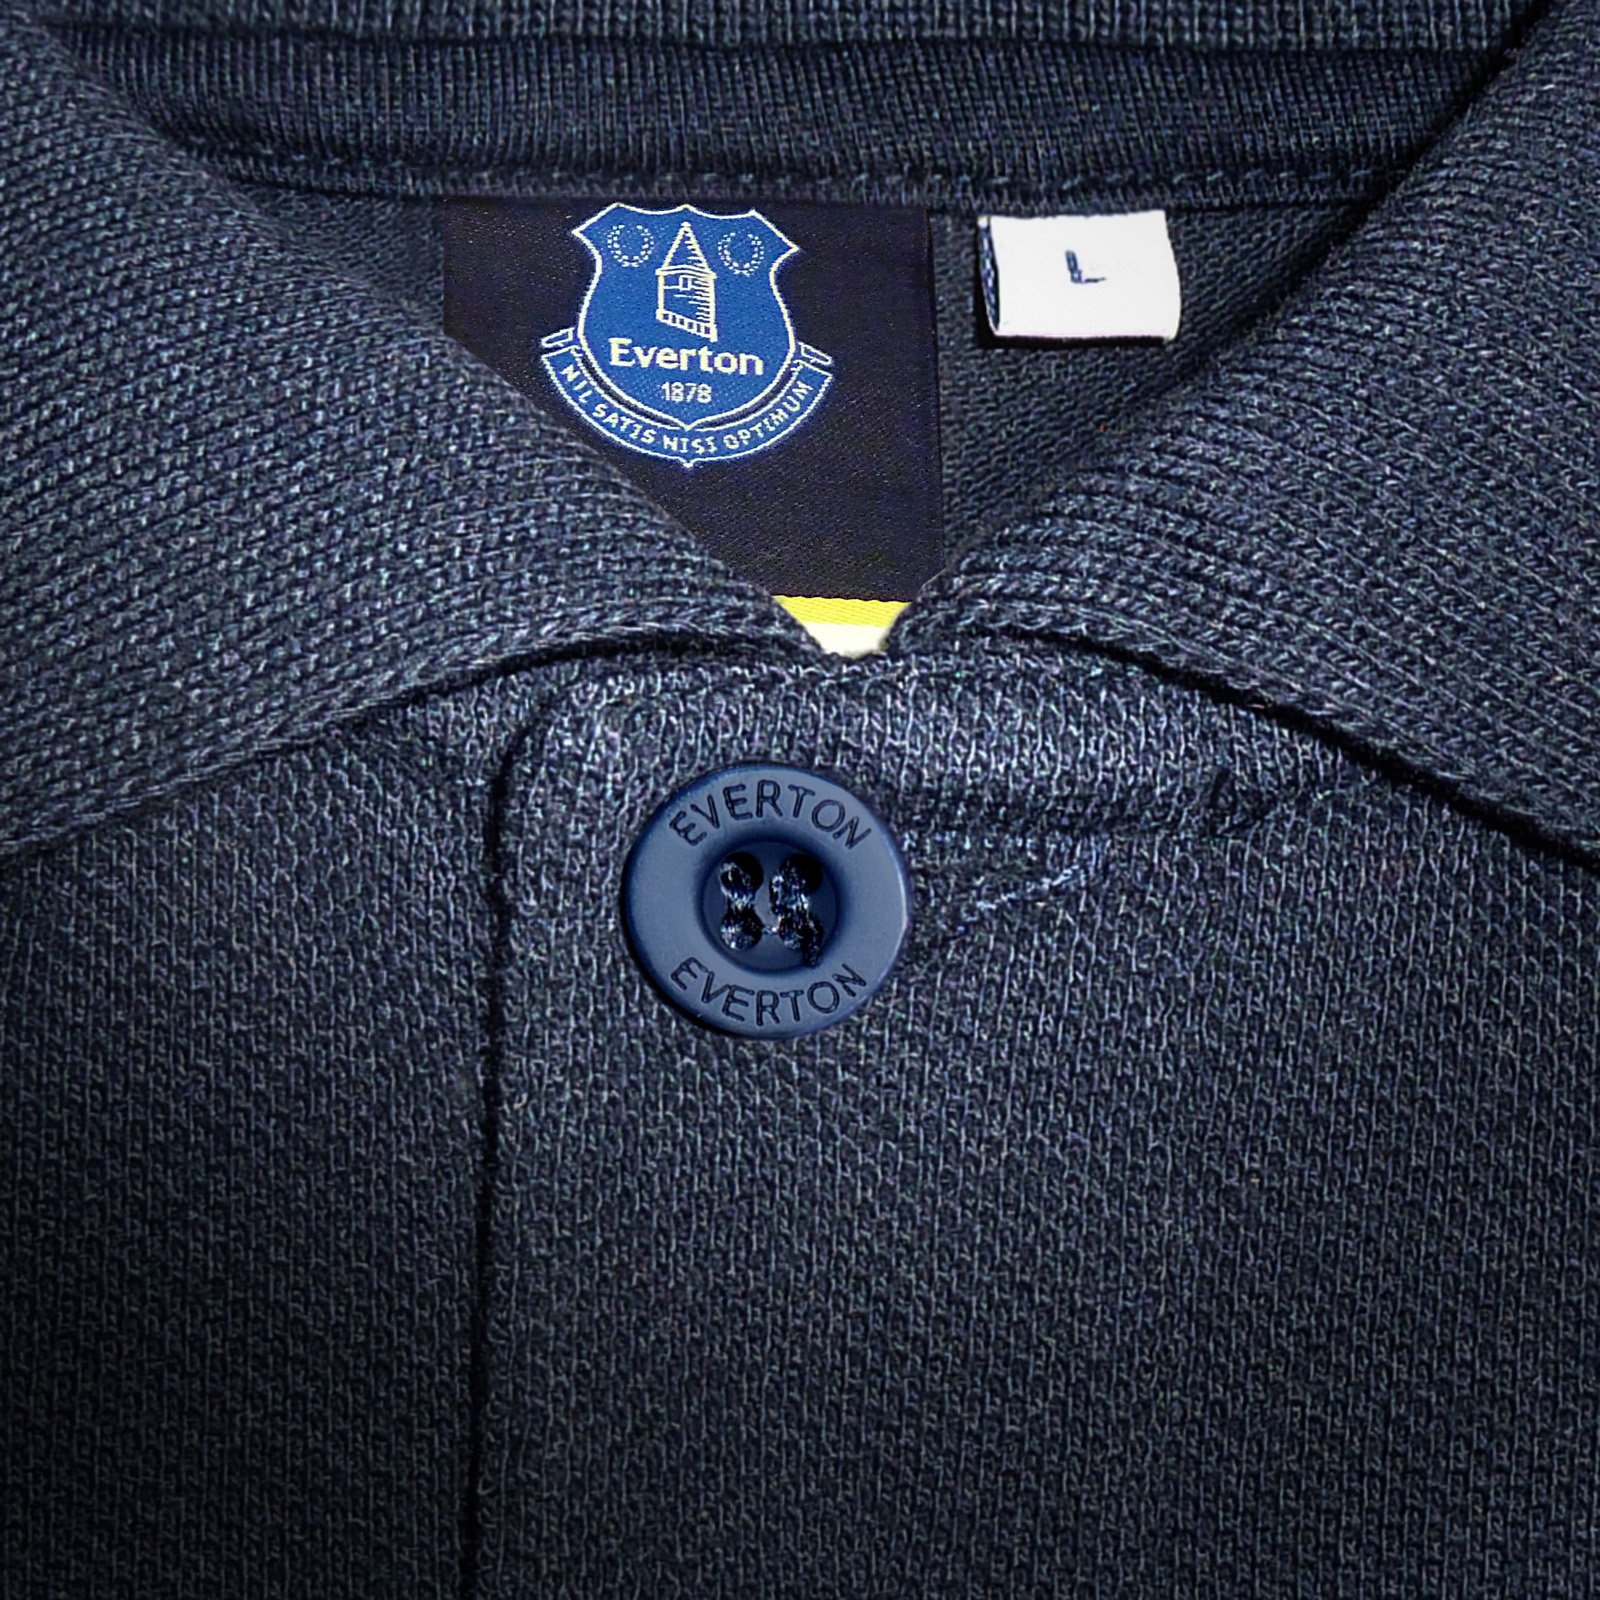 Everton-FC-Official-Football-Gift-Mens-Crest-Polo-Shirt thumbnail 13